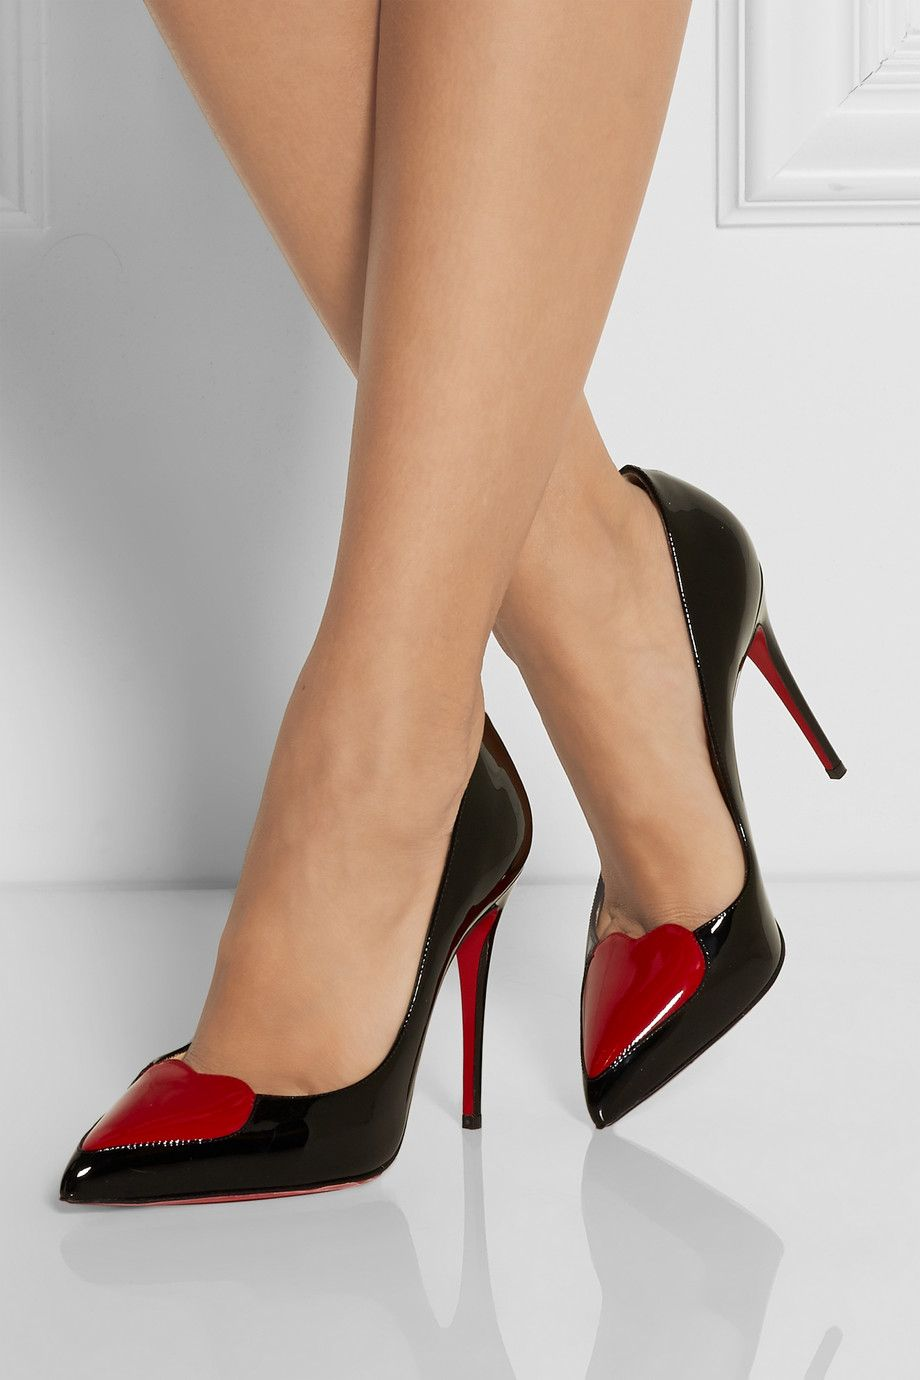 christian louboutin cora heart 100 patent leather pumps